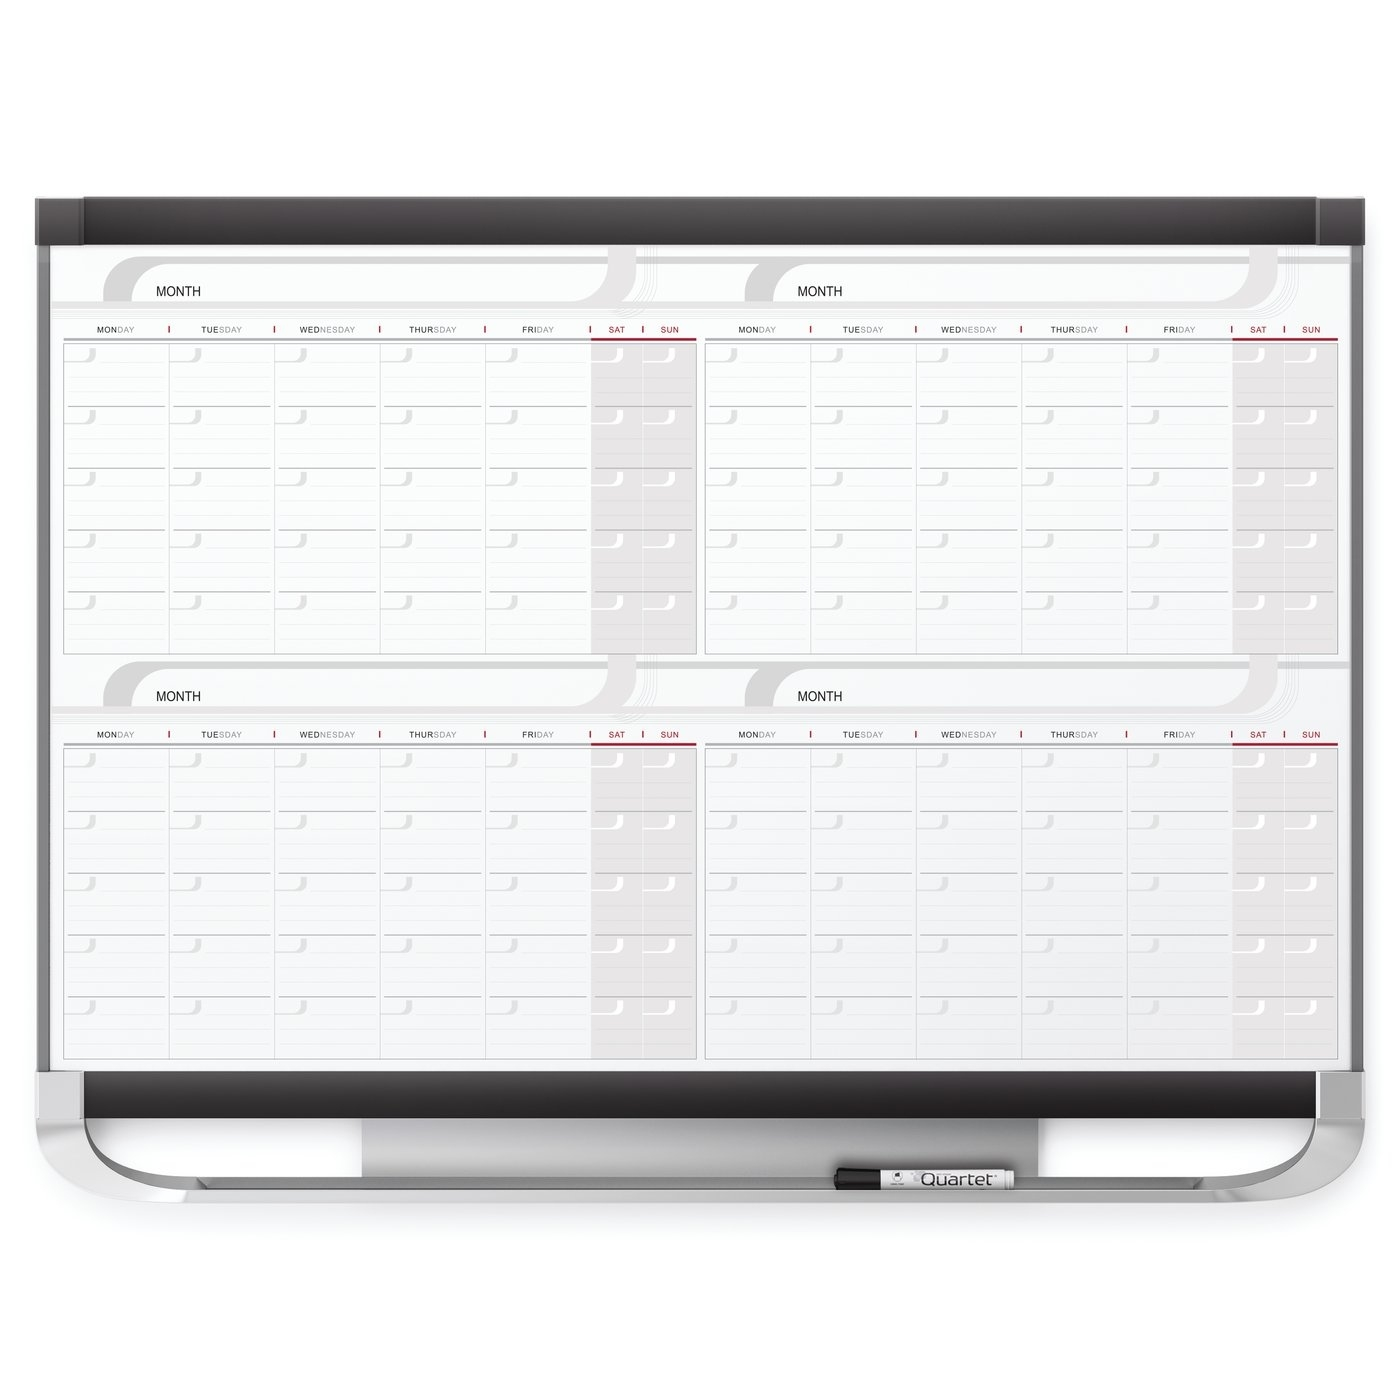 Quartet - Boards - Specialty Whiteboards - Whiteboard Calendars 2 Month Calendar Whiteboard